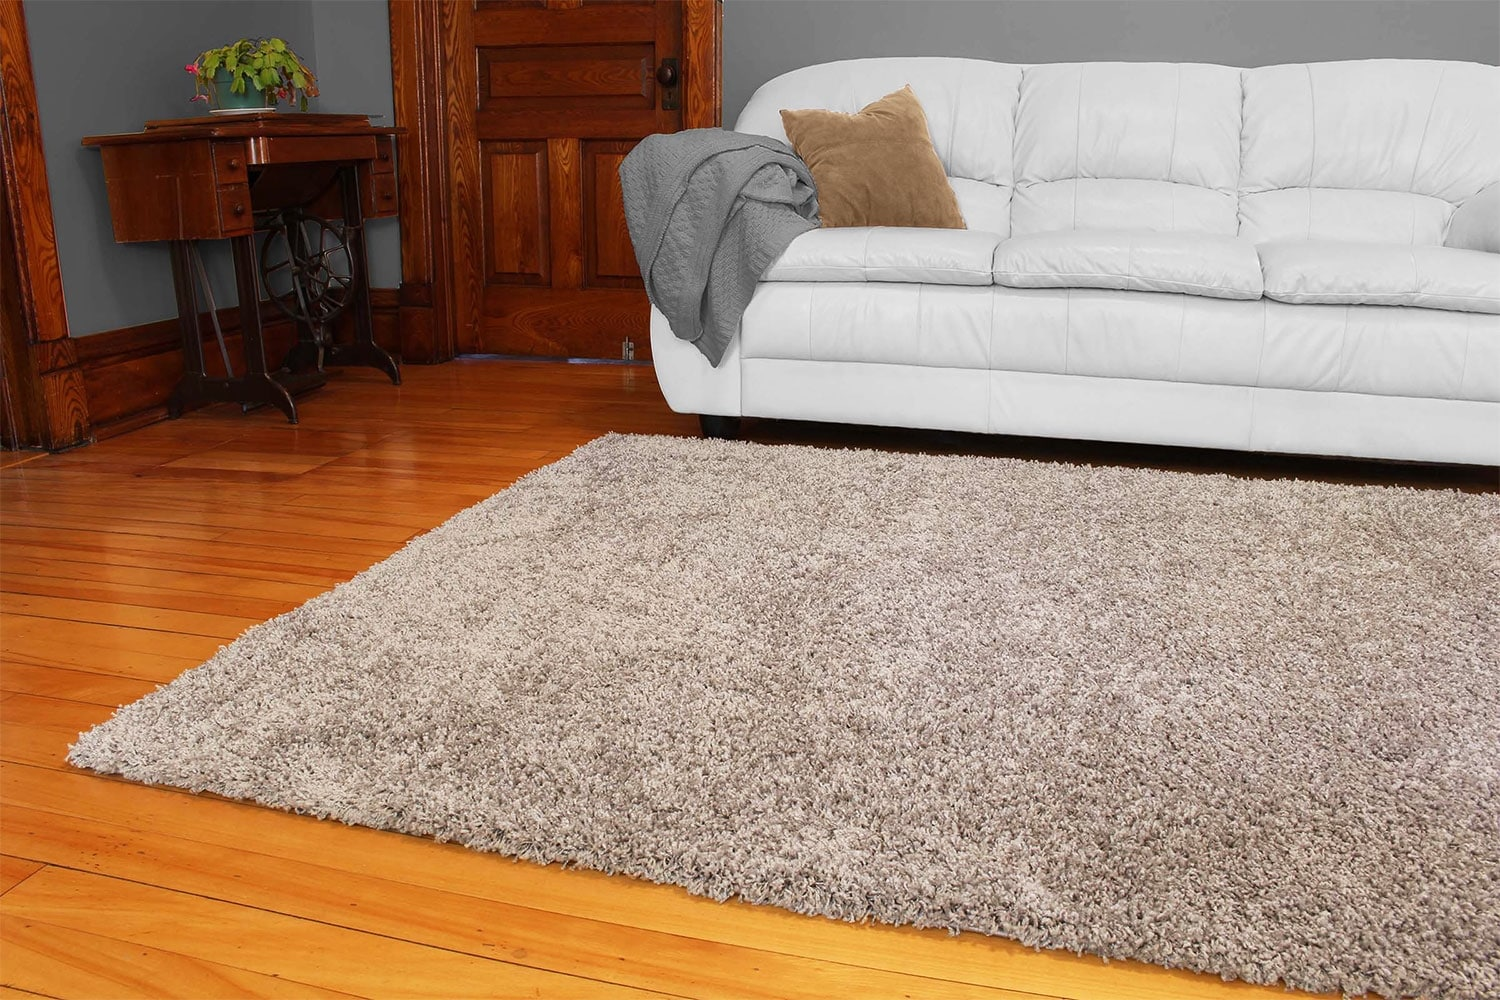 Shaggy Dark Grey Area Rug – 8' x 10'